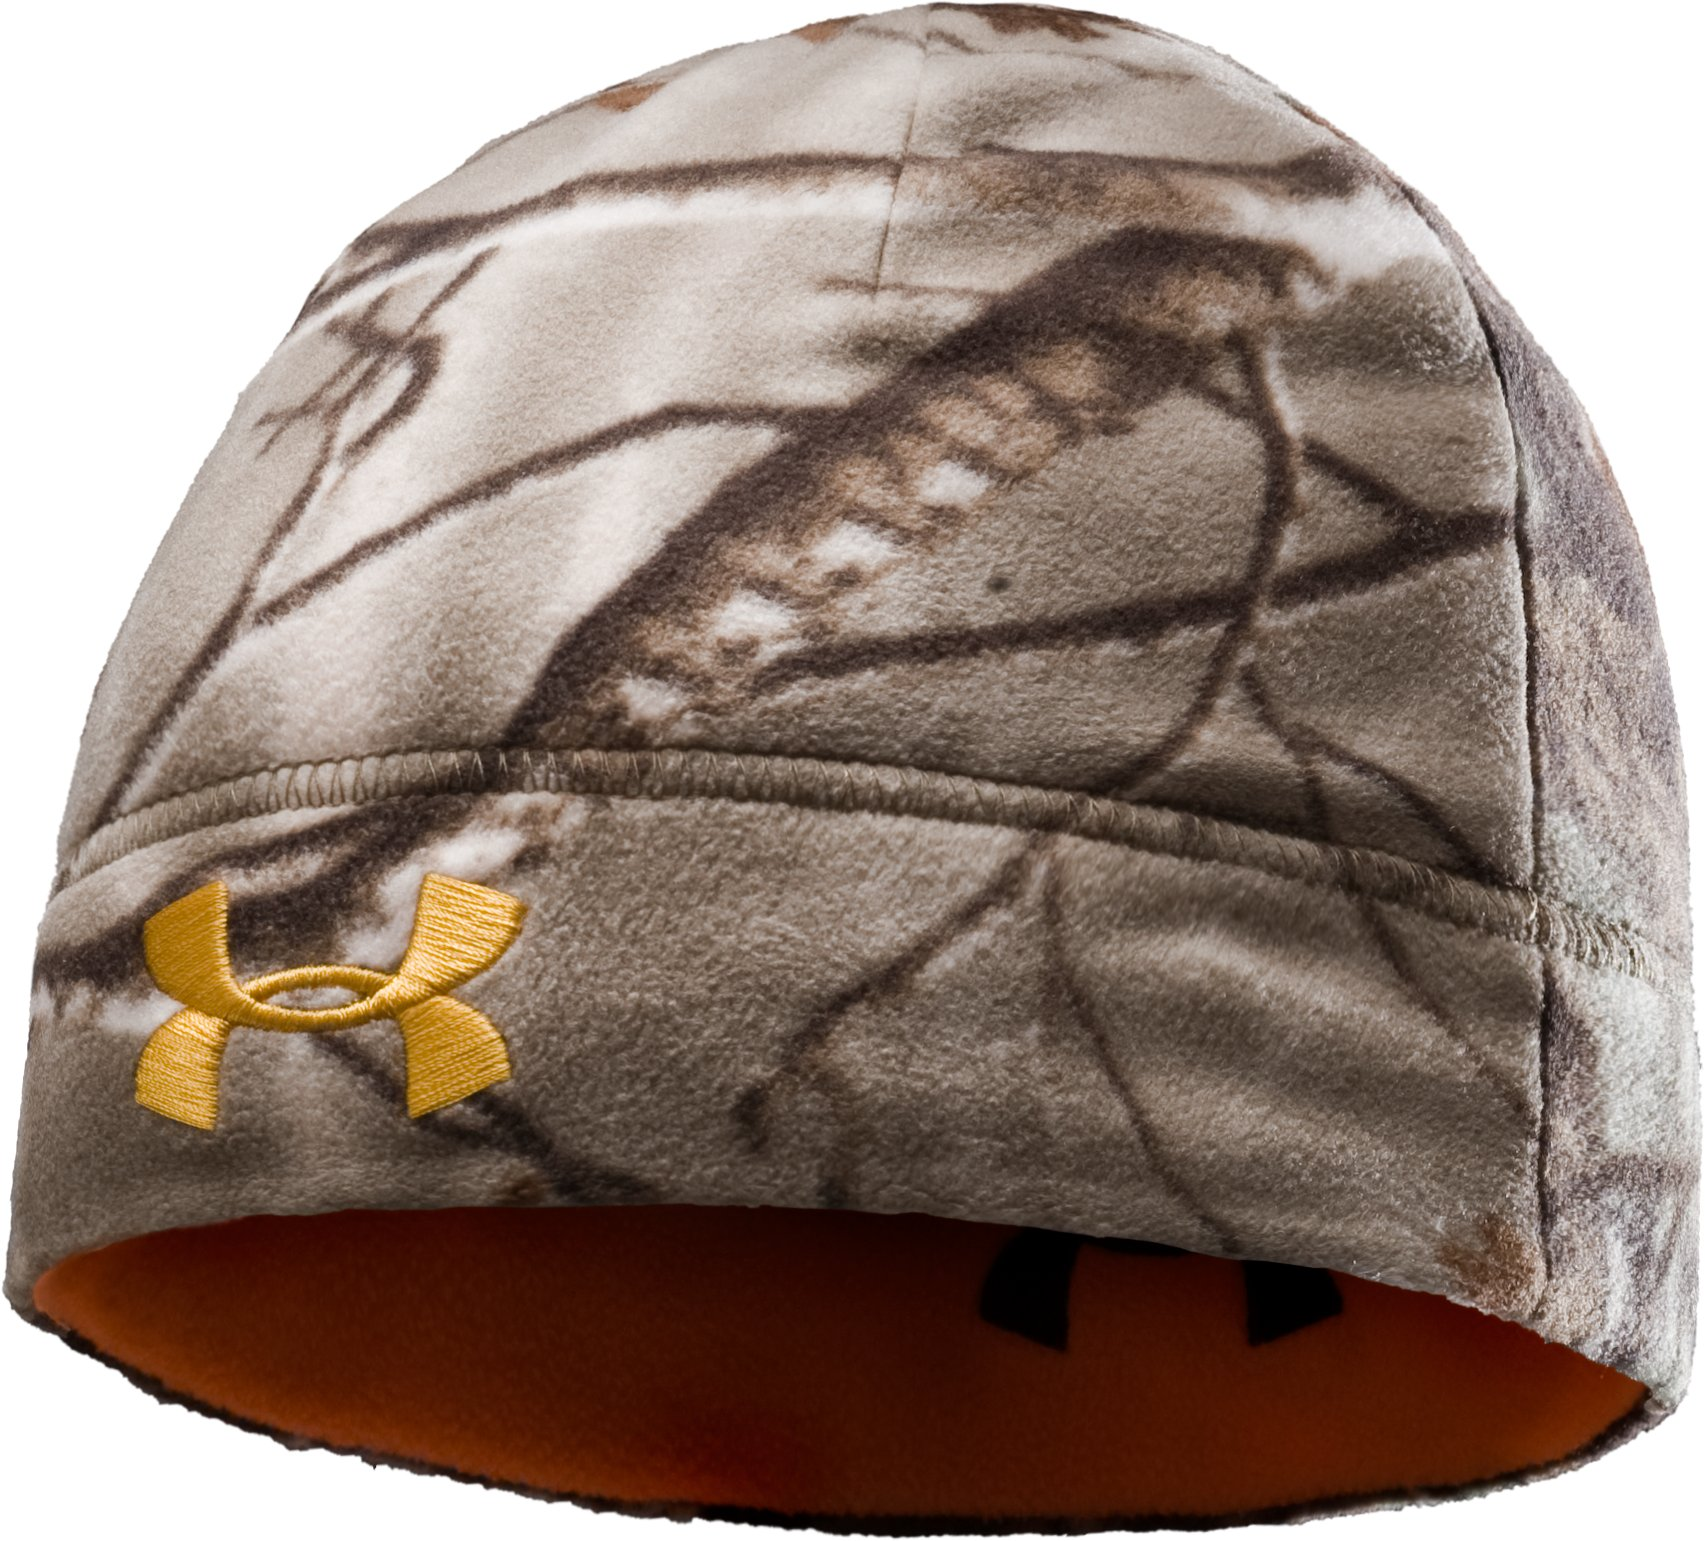 Men's Reversible Camo Arctic Beanie, Realtree AP